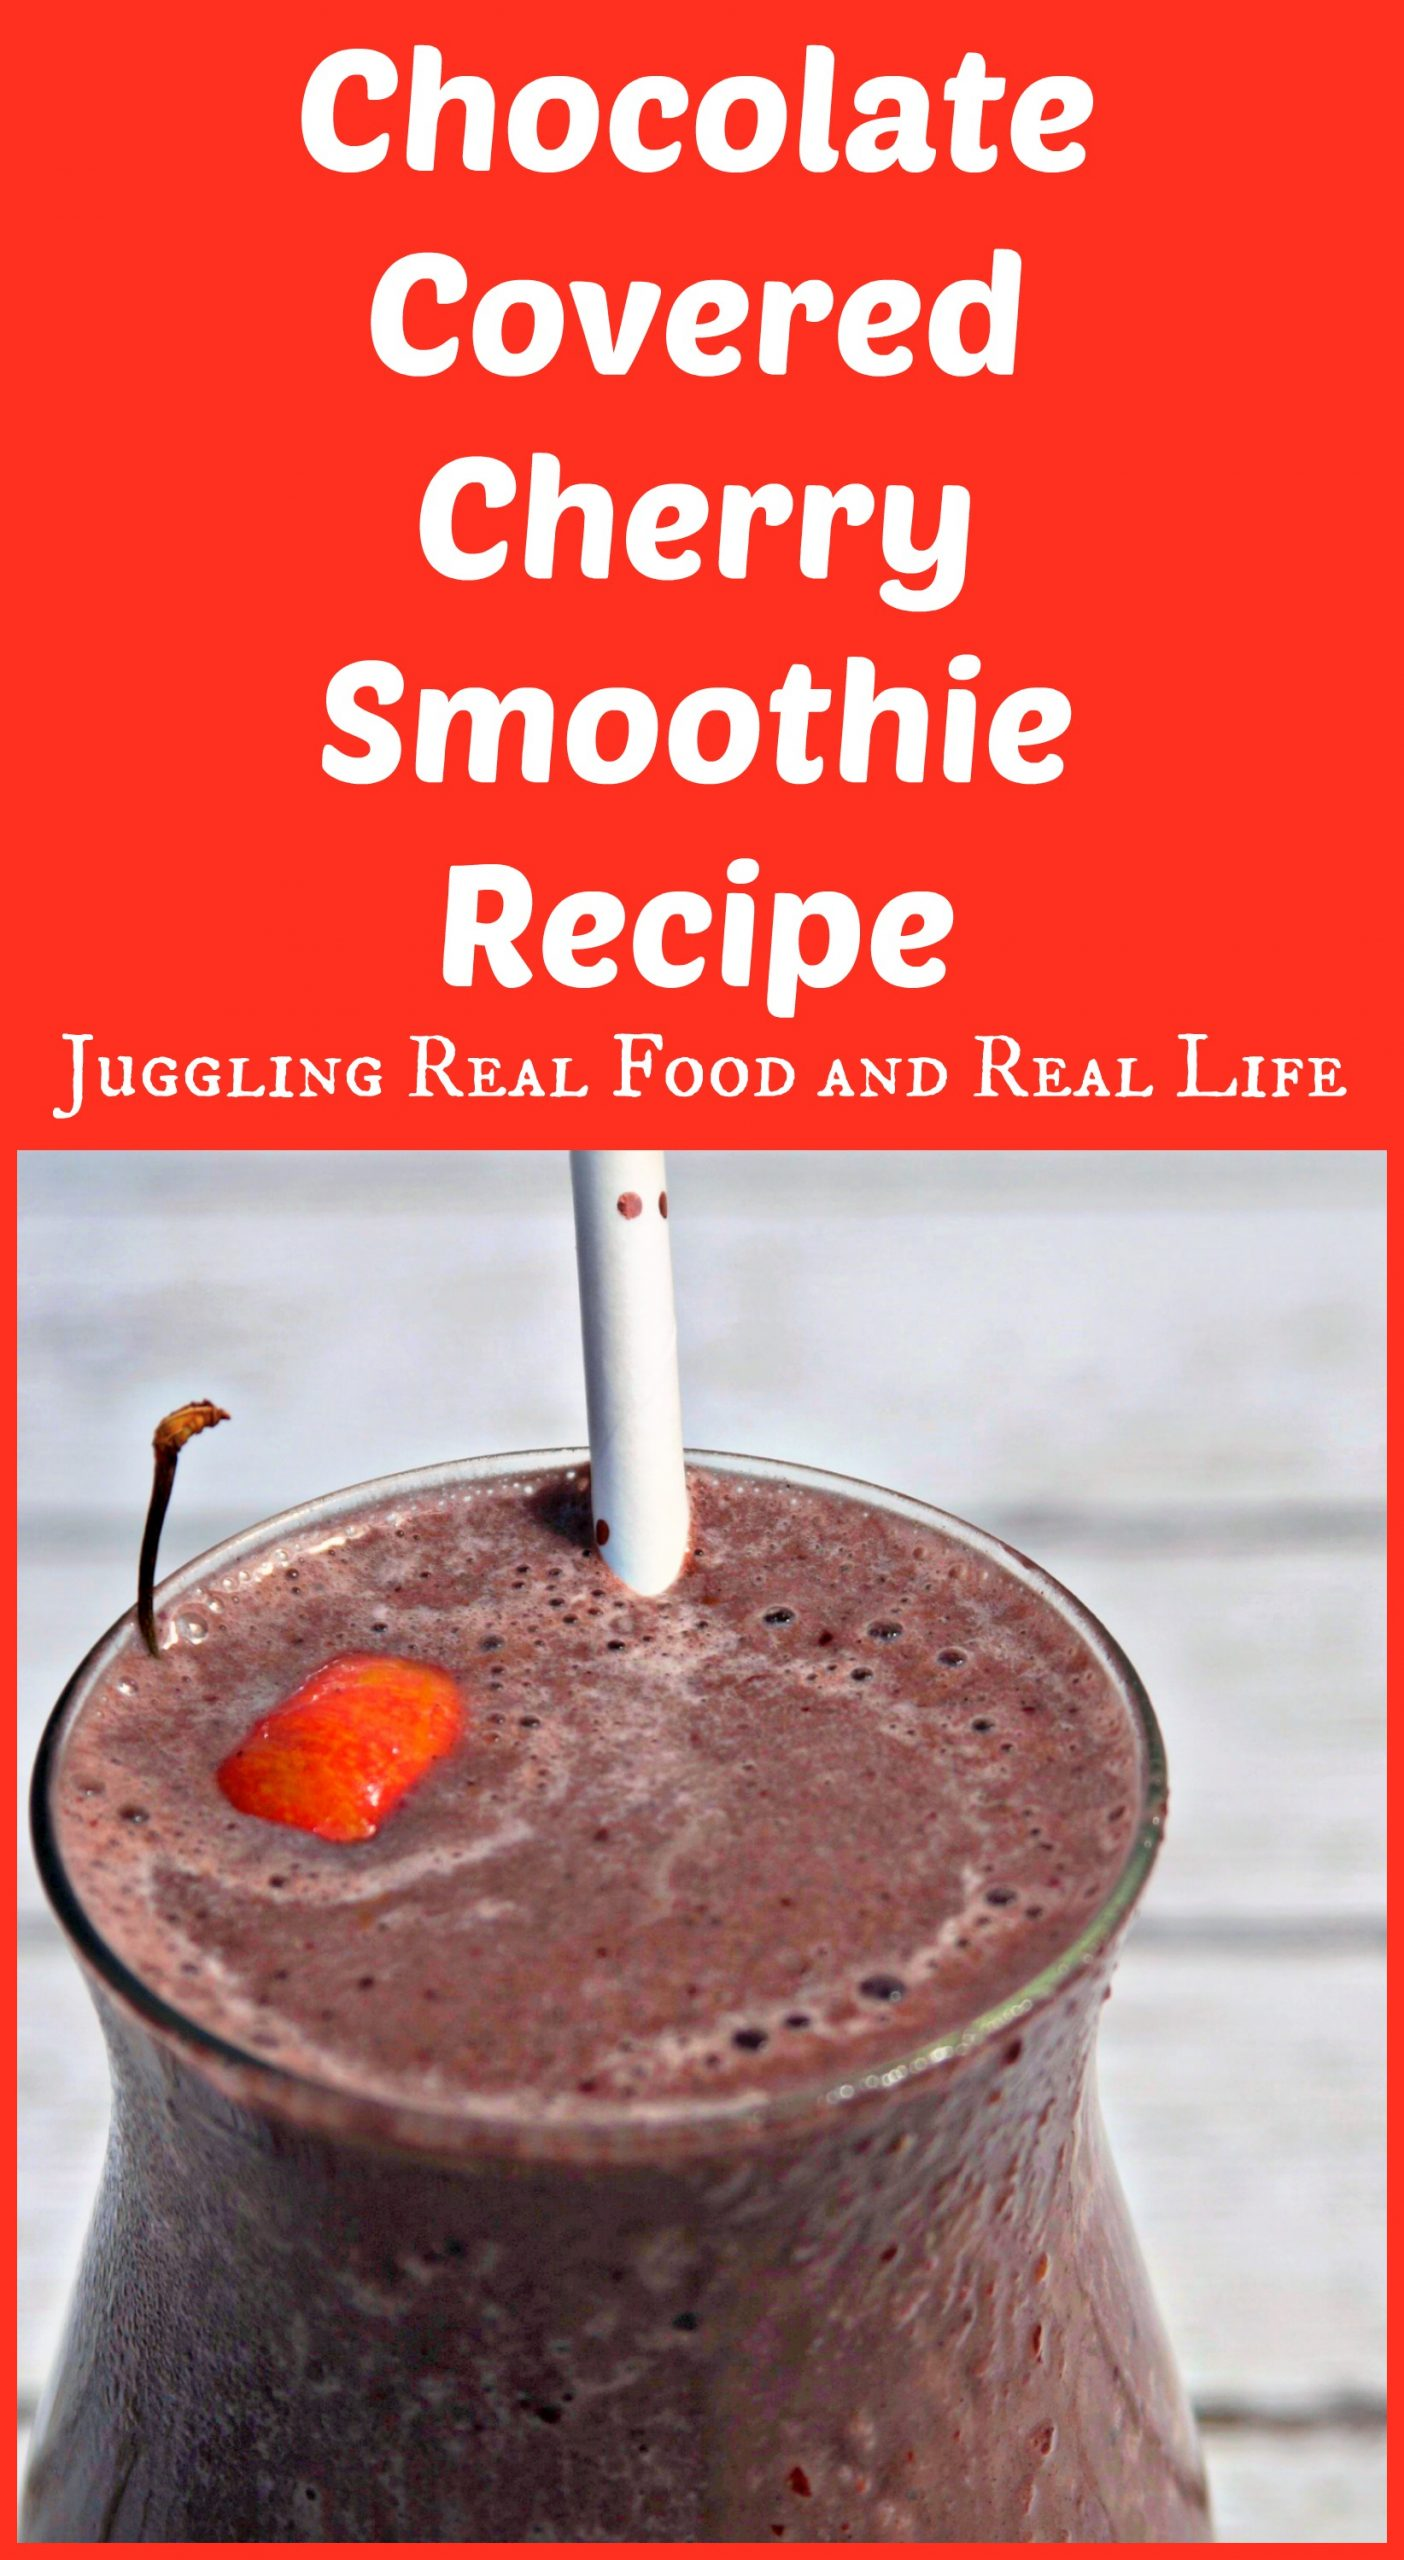 Chocolate Covered Cherry Smoothie Recipe - Juggling Real Food and ...